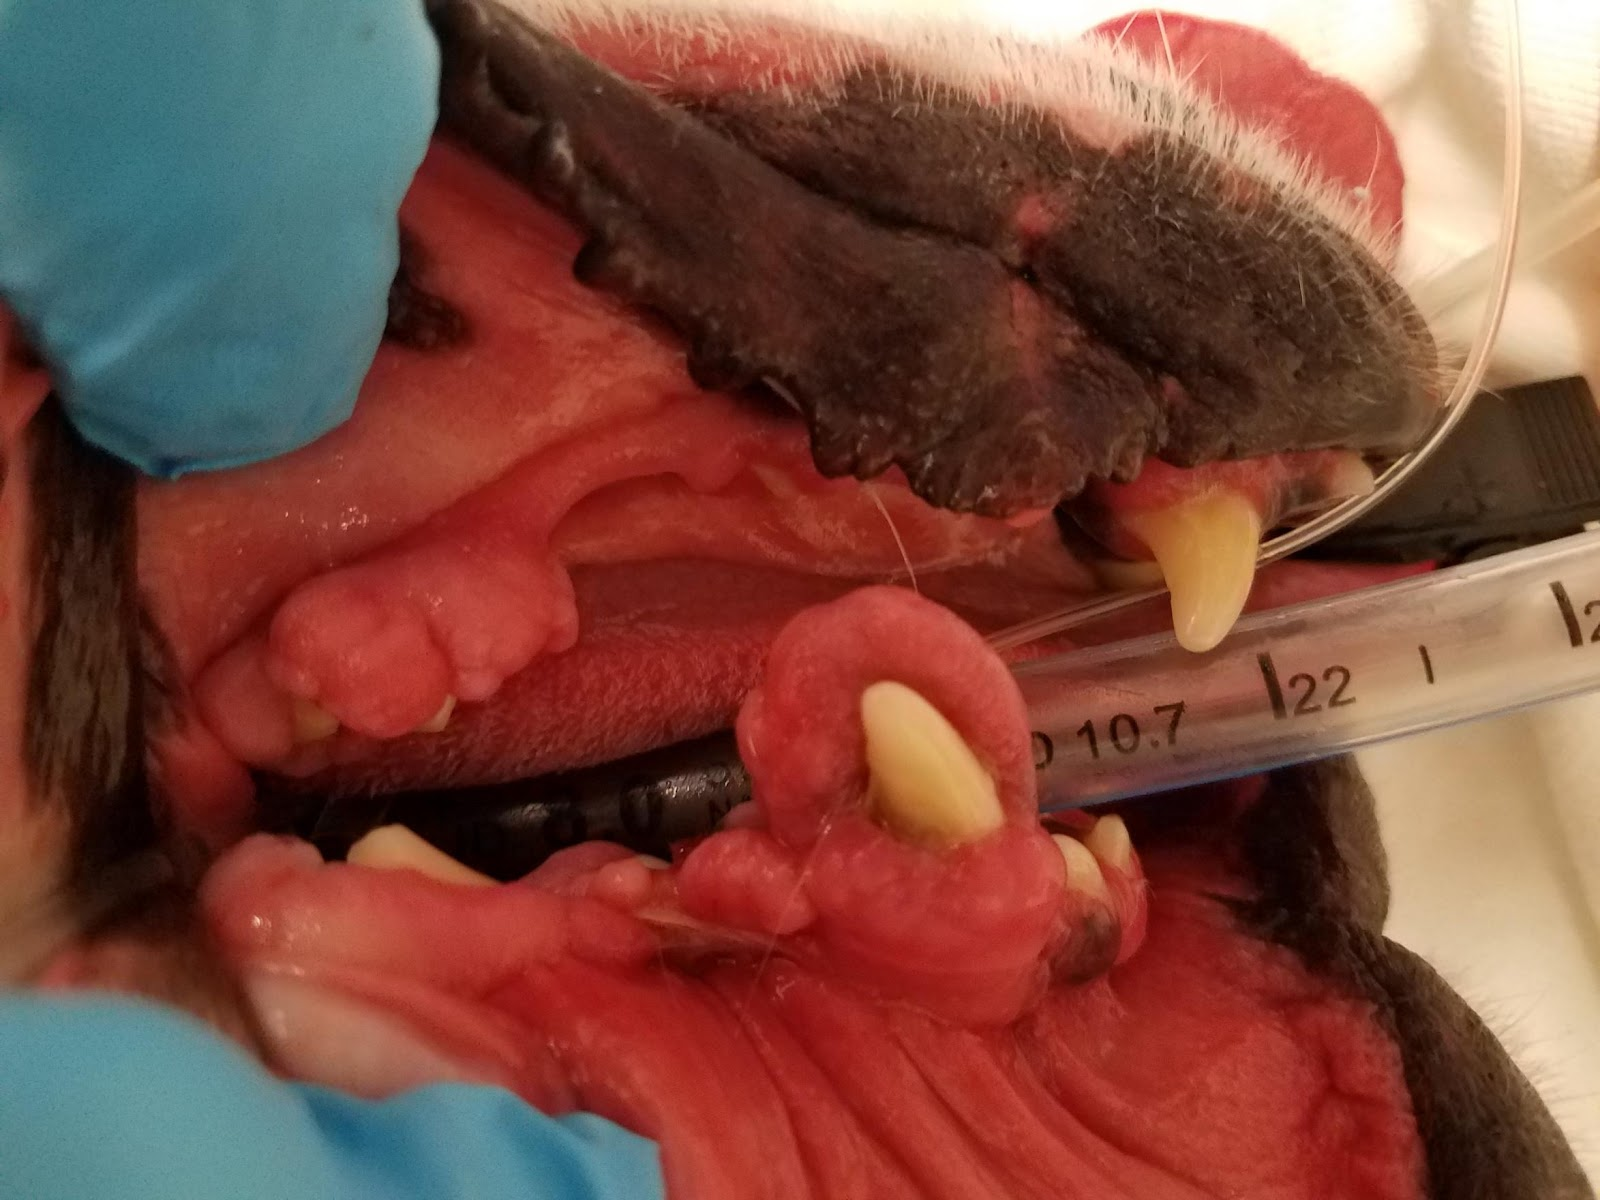 \\WDMYCLOUDMIRROR\SSVC_Storage\Lectures\NEVMA Lectures\Images\Gingival Hyperplasia Pictues\20180908_103311.jpg